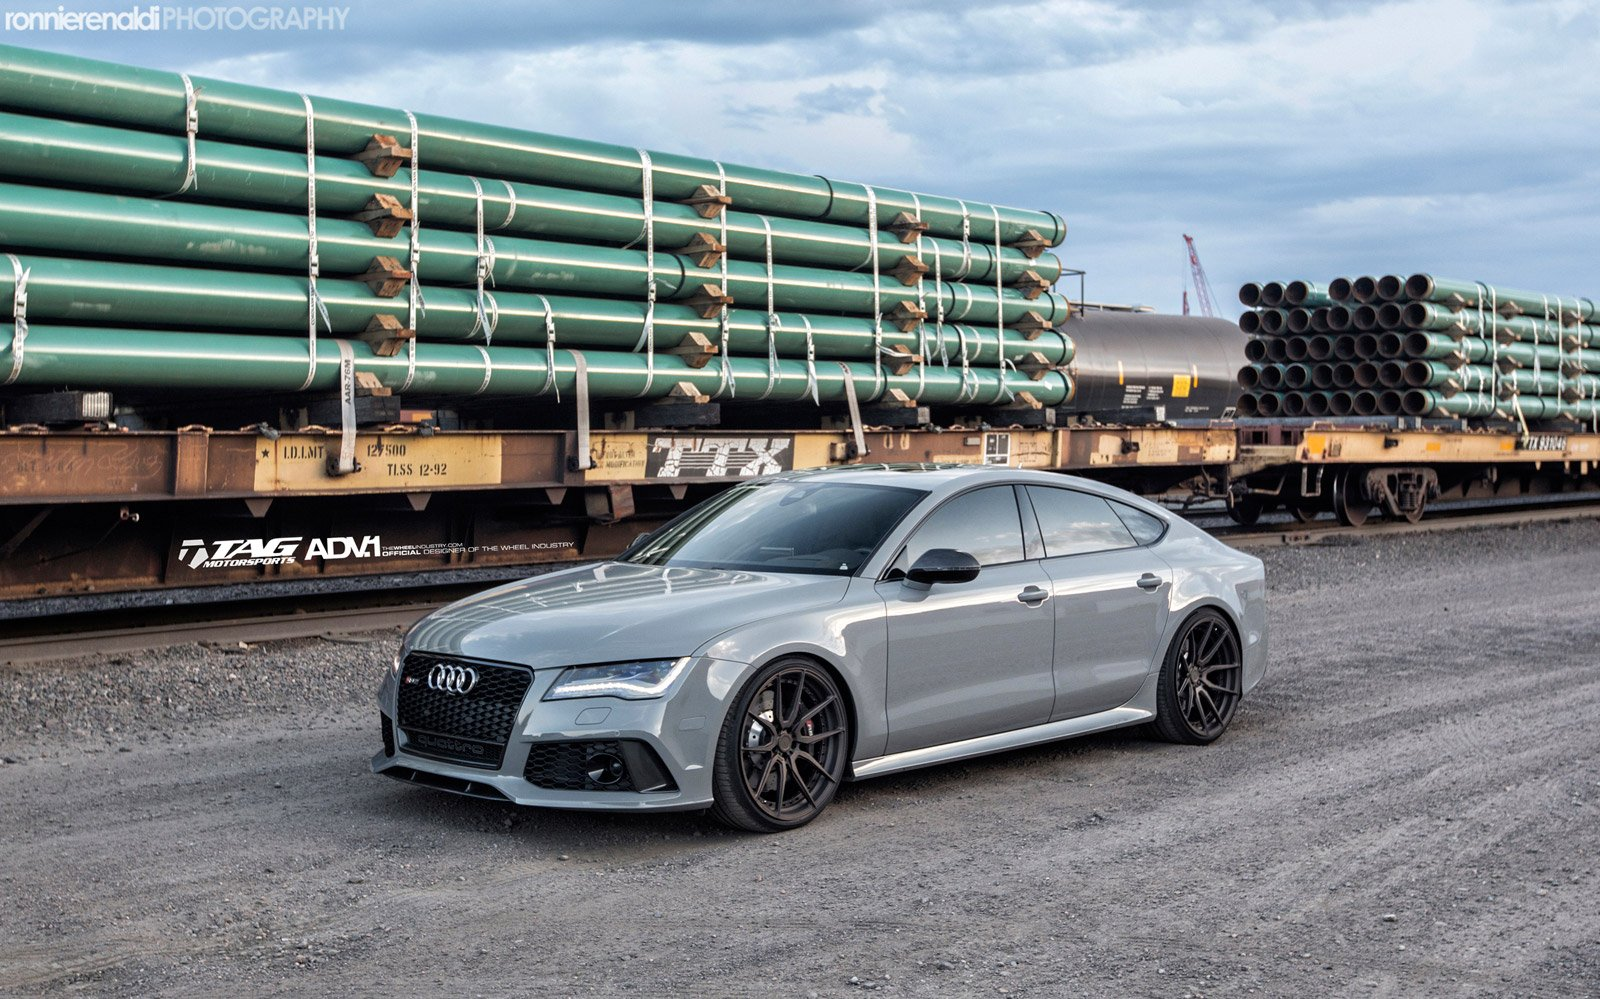 adv 1 wheels audi rs7 cars tuning wallpaper 1600x999. Black Bedroom Furniture Sets. Home Design Ideas